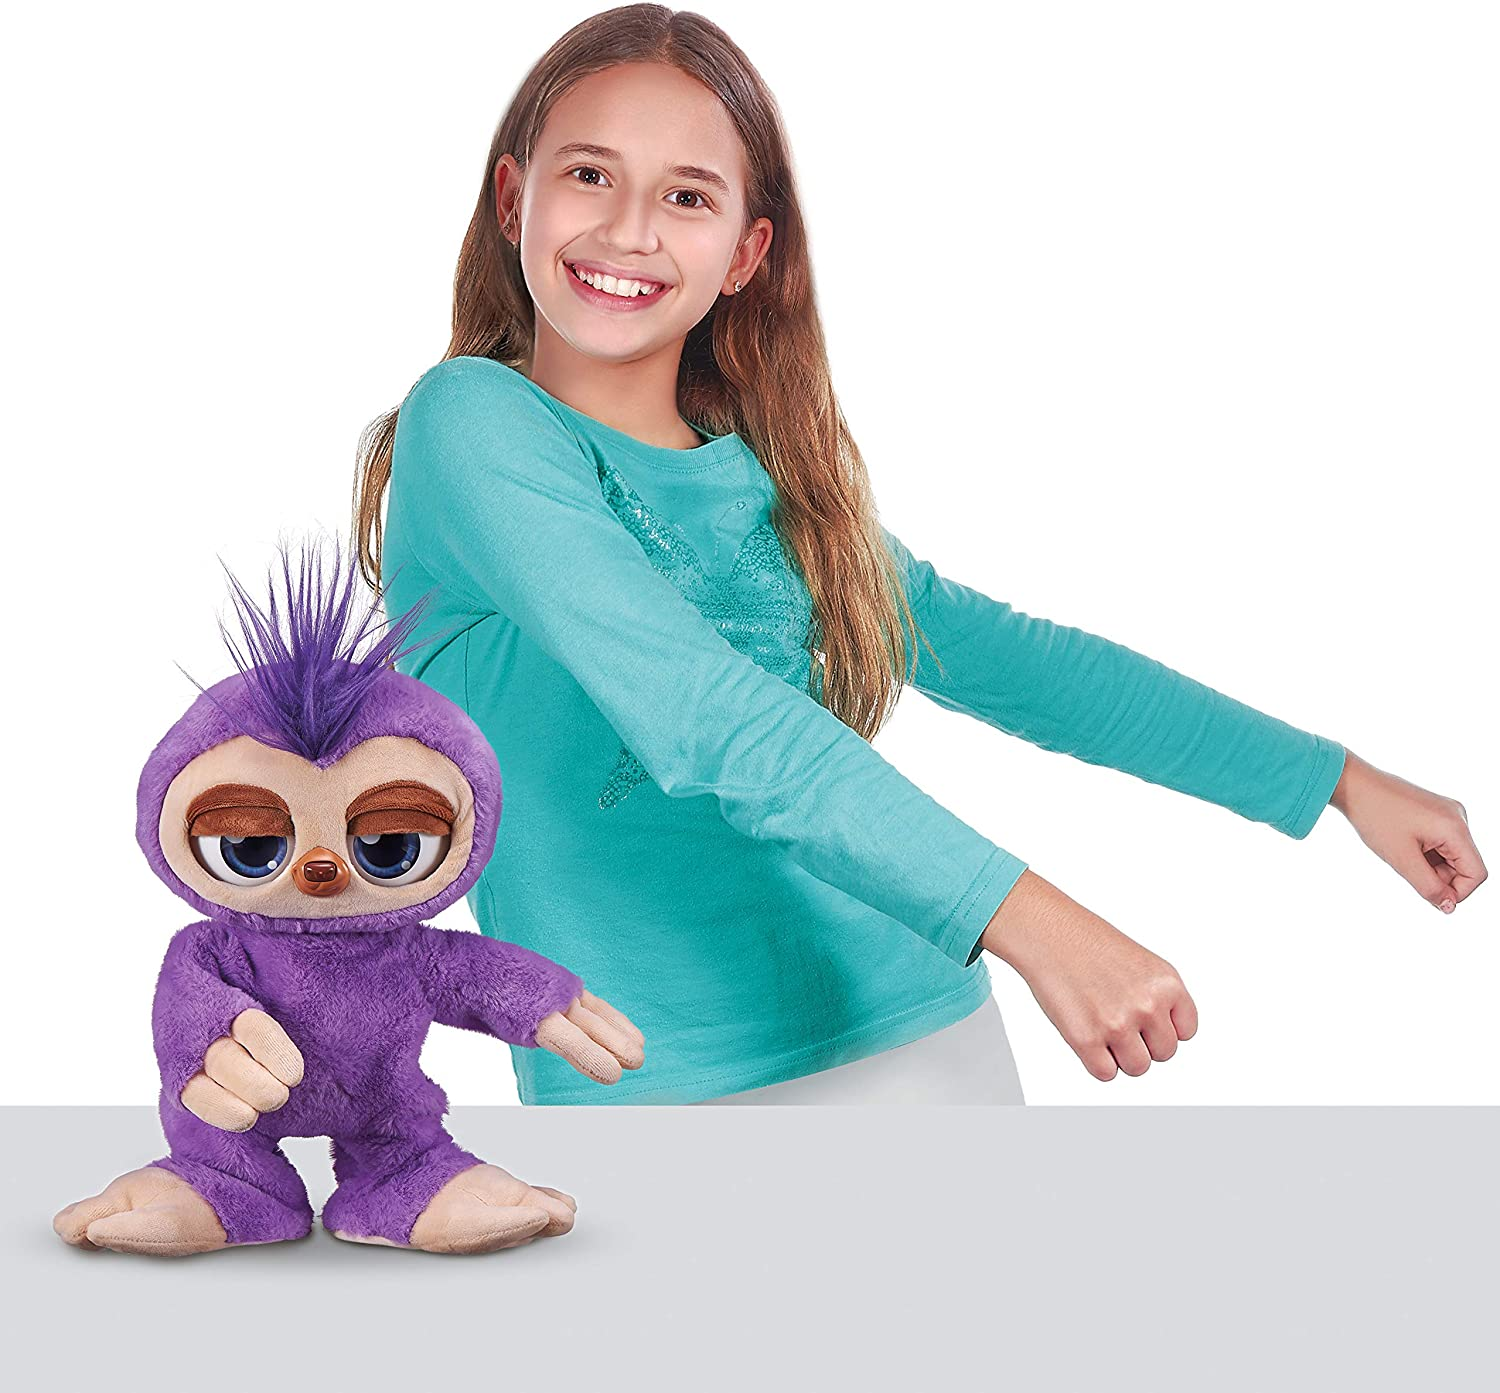 ZURU PETS ALIVE Fifi The Flossing Sloth